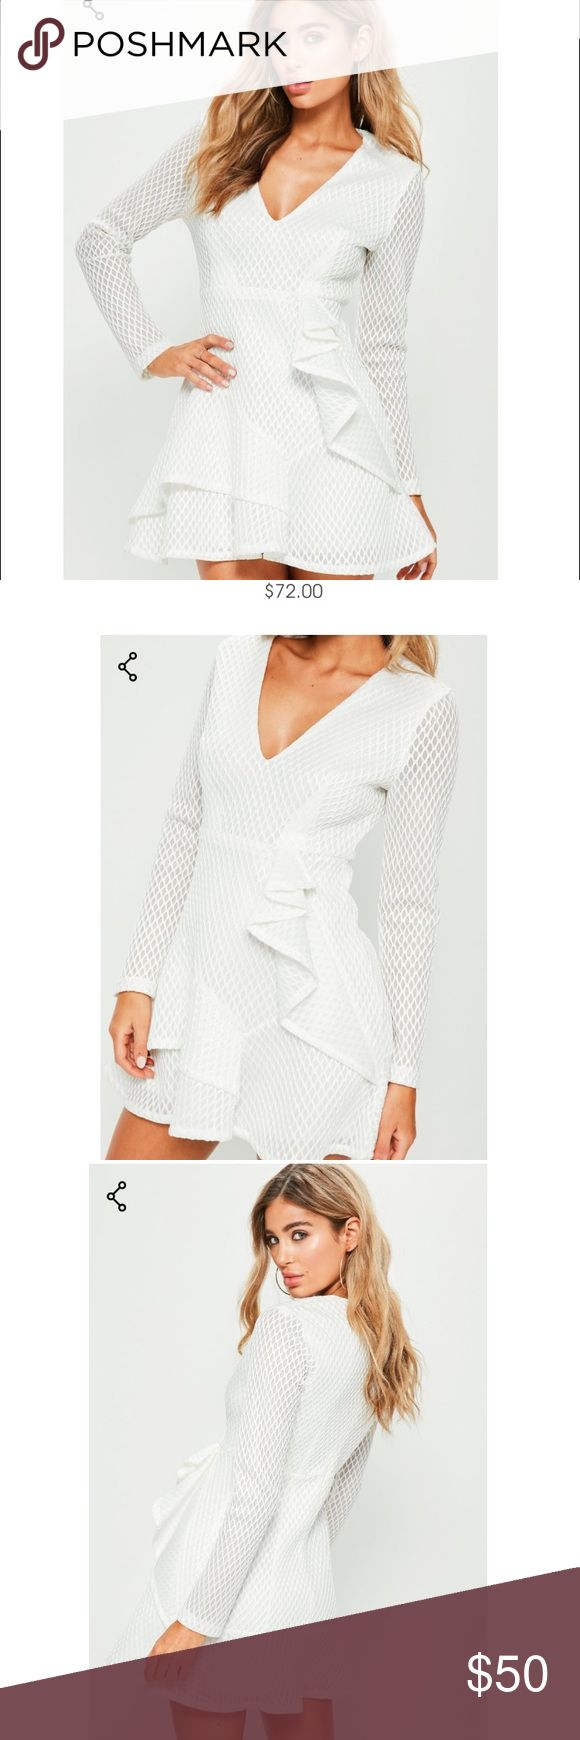 White skater dress : missguided Adorable white skater dress. New with tags. I bought the wrong size. This is a UK size10, US size 6. Missguided Dresses Mini